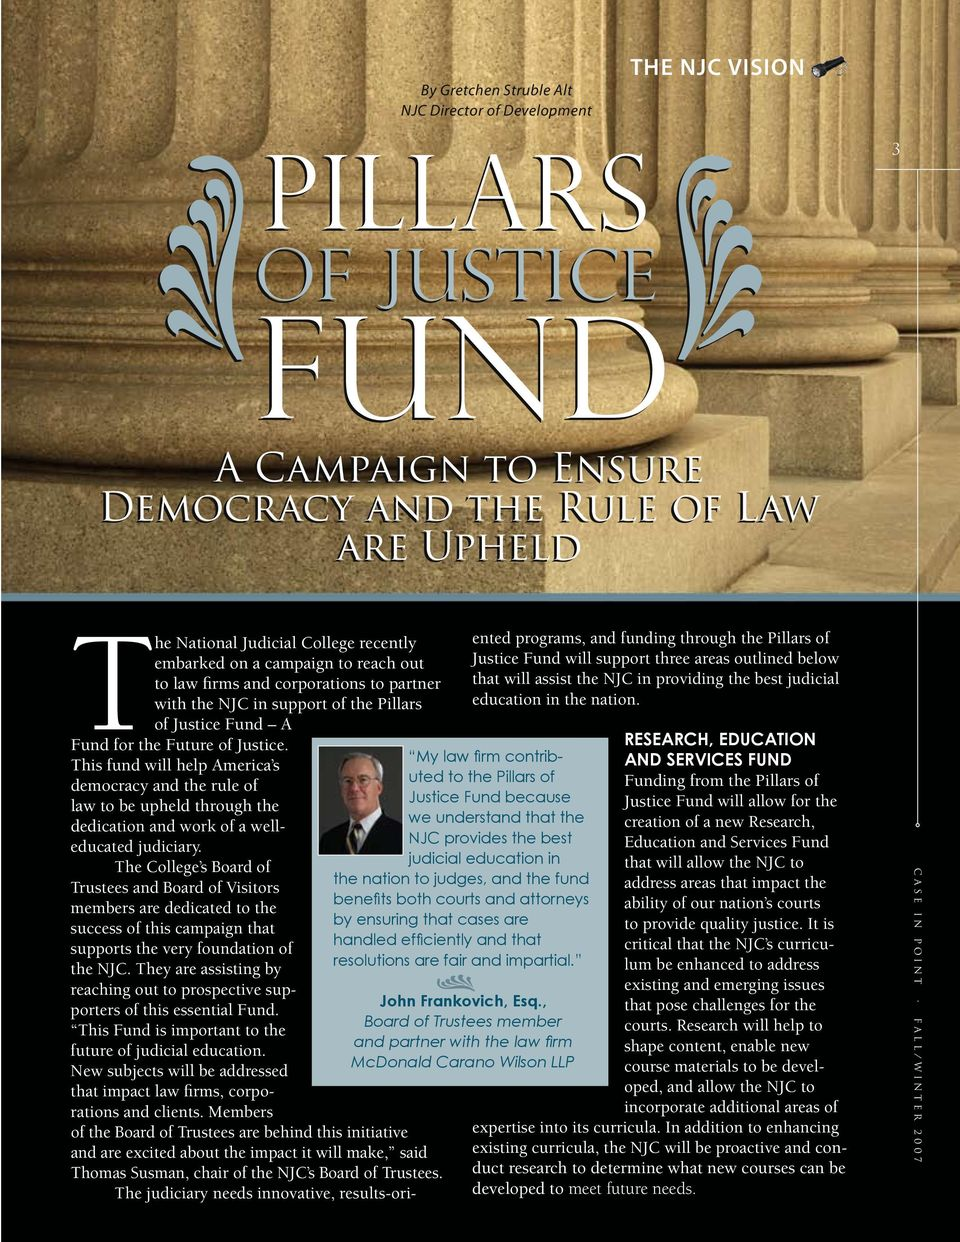 This fund will help America s democracy and the rule of law to be upheld through the dedication and work of a welleducated judiciary.